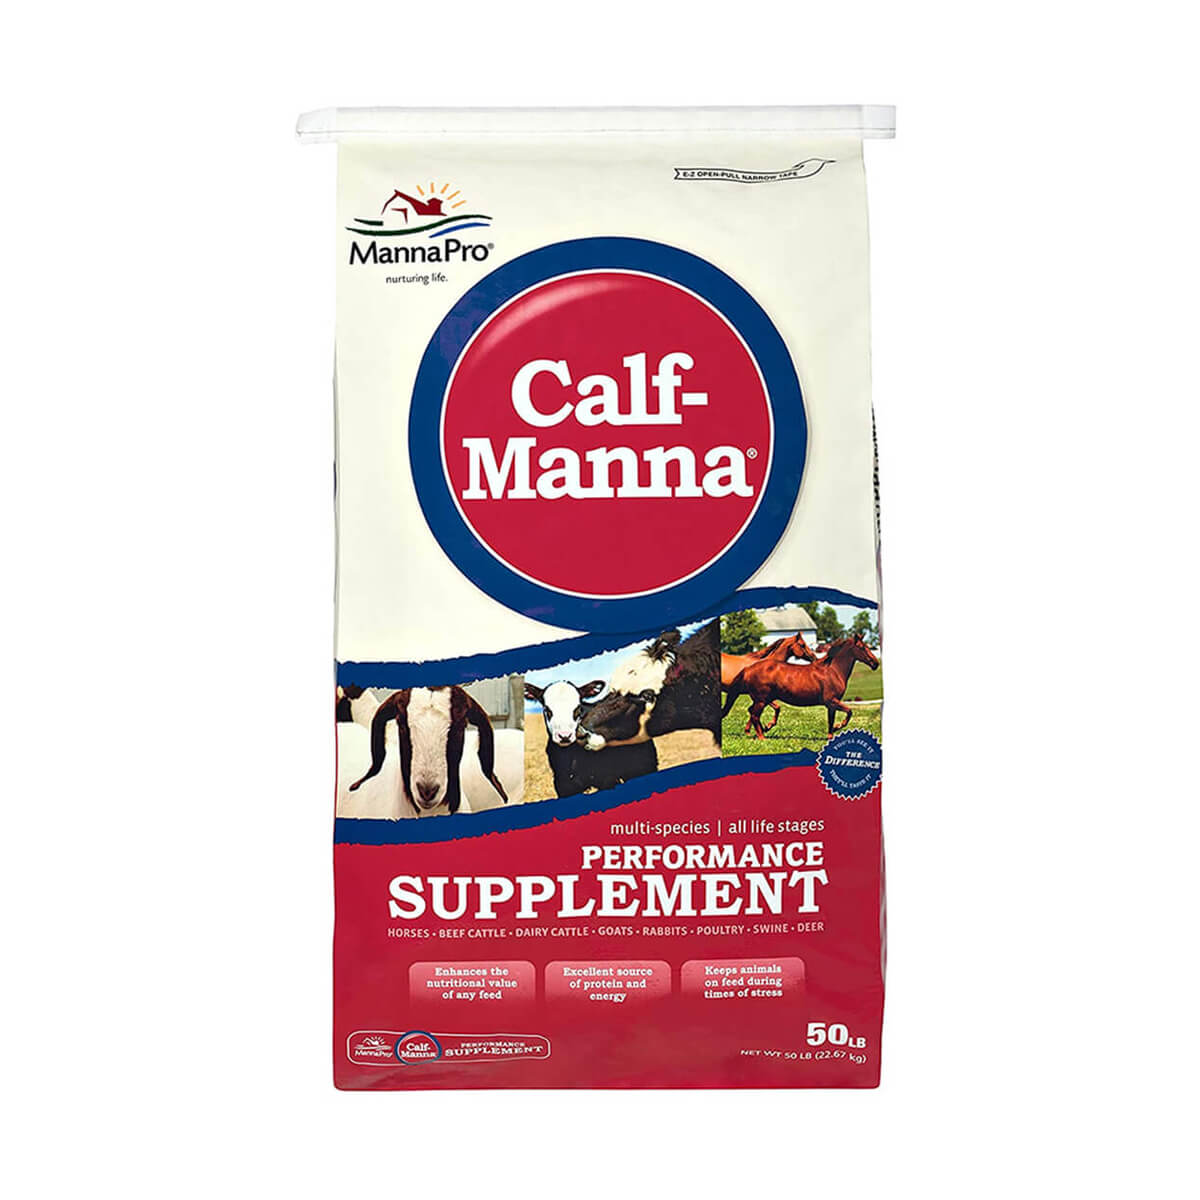 Calf-Manna Performance Supplement - 22.67 kg